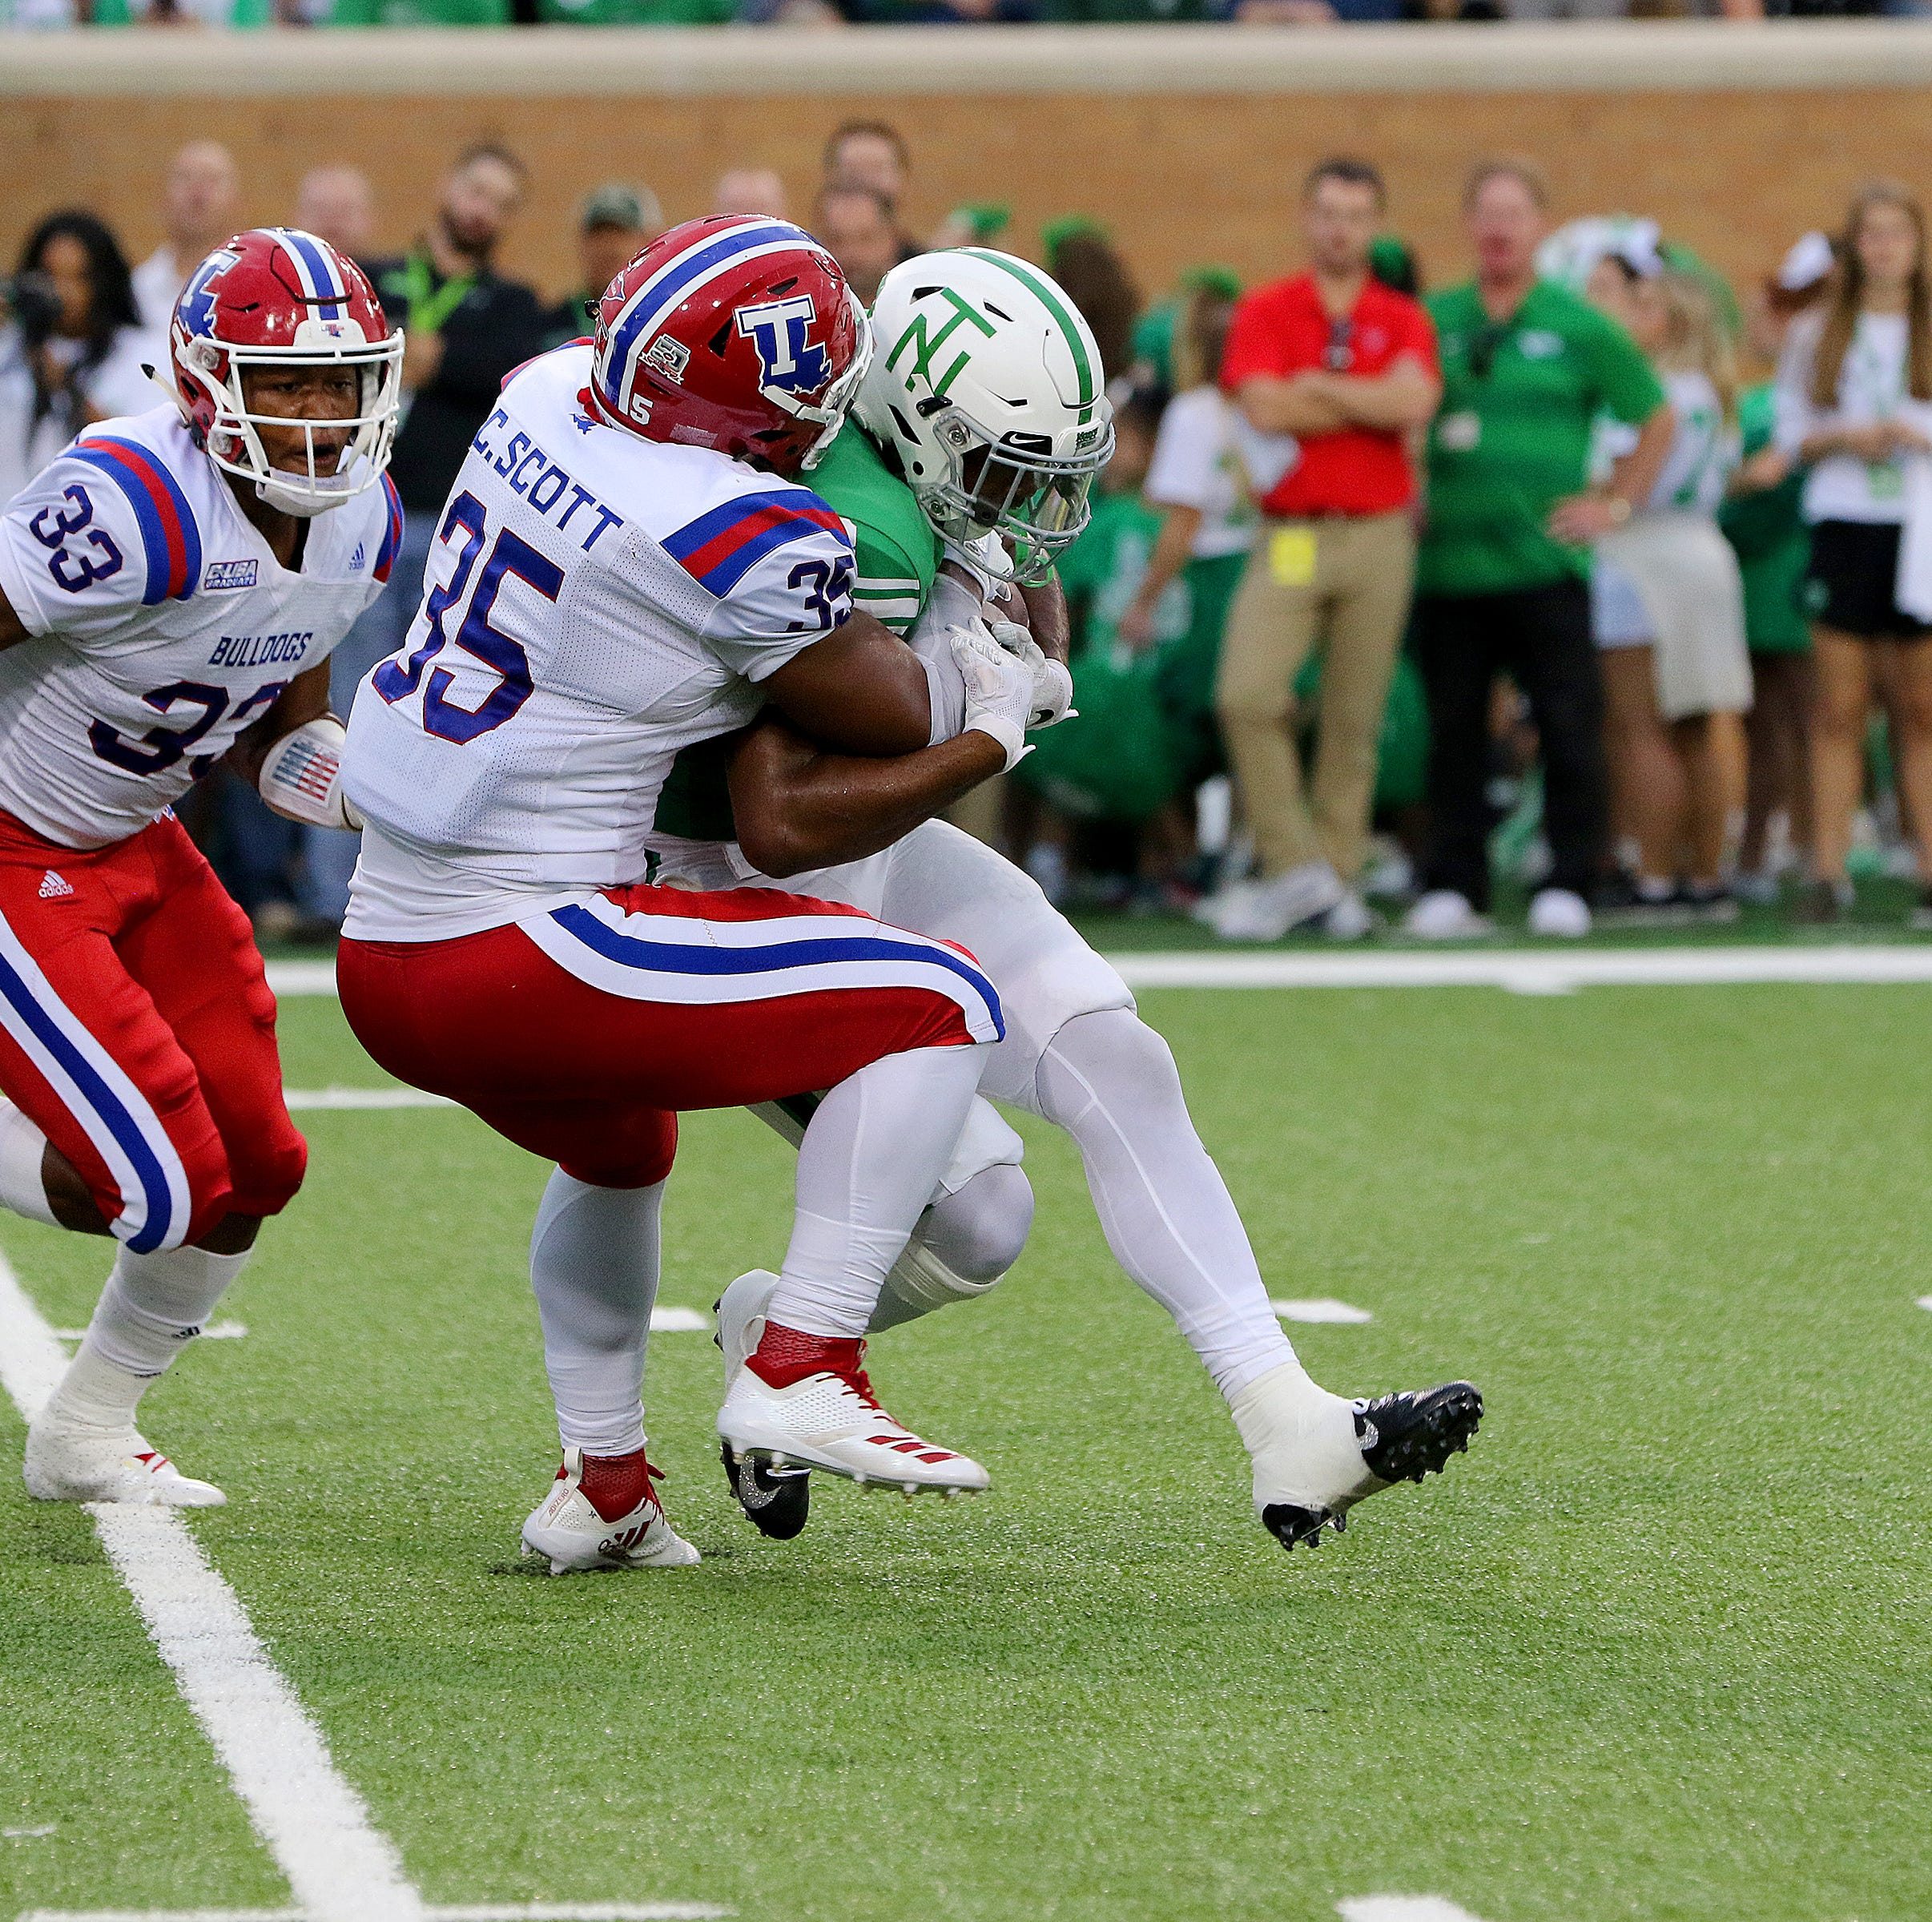 Louisiana Tech finds 'thumper' on defense in Collin Scott